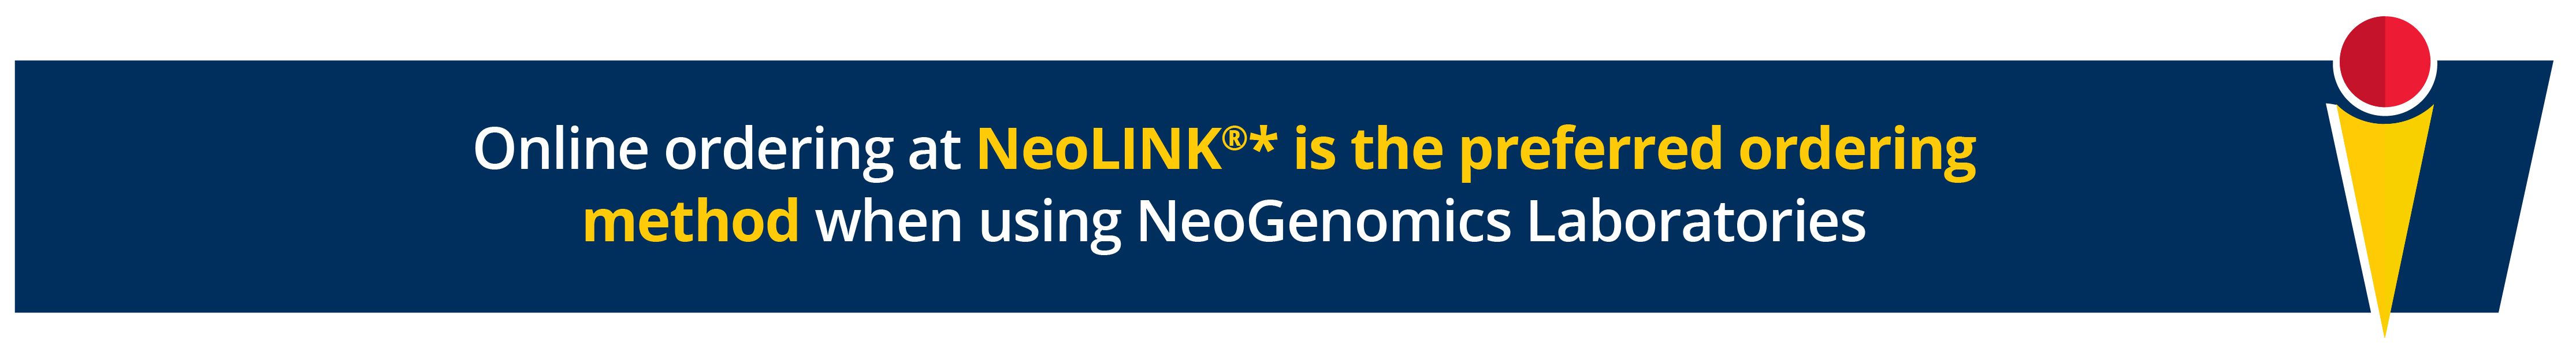 Online ordering at NeoLINK® is the preferred ordering method when using NeoGenomics Laboratories